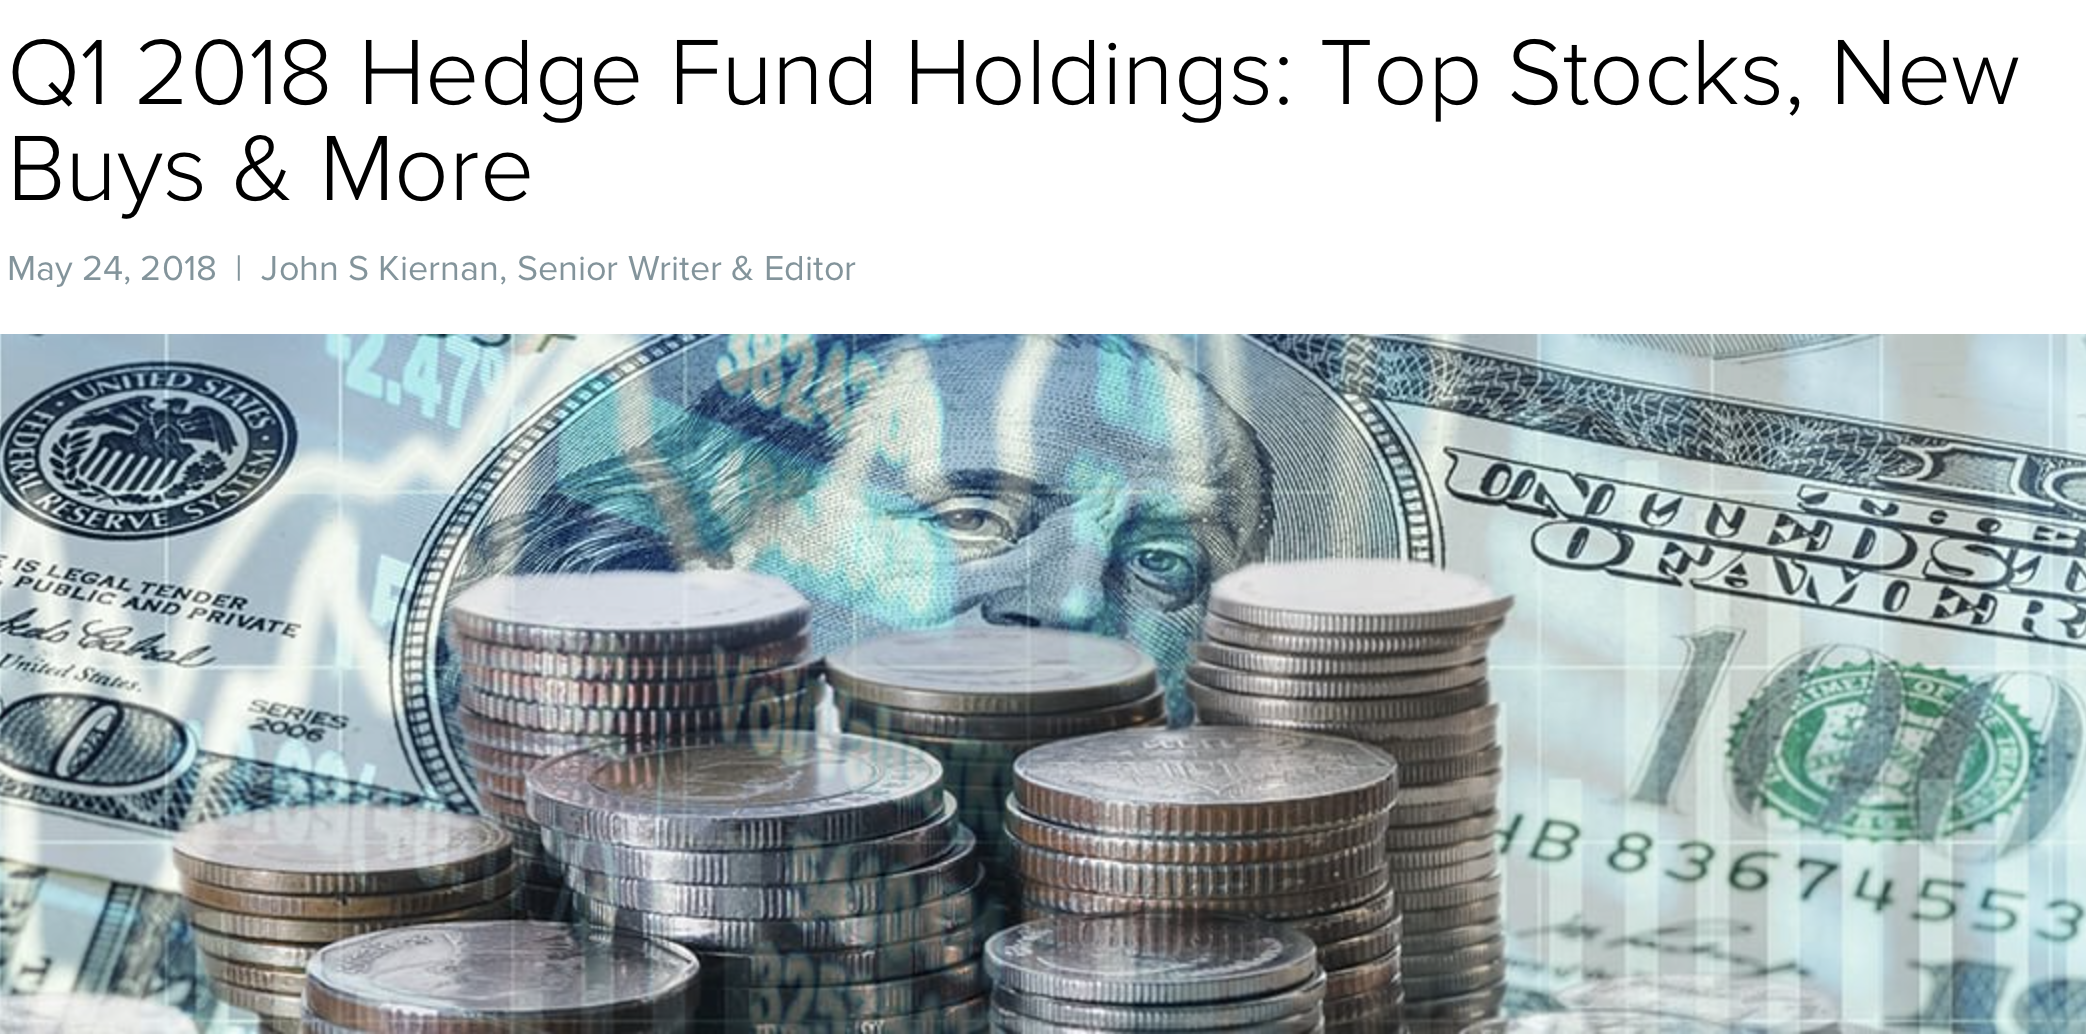 Q1 2018 Hedge Fund Holdings: Top Stocks, New Buys & More -